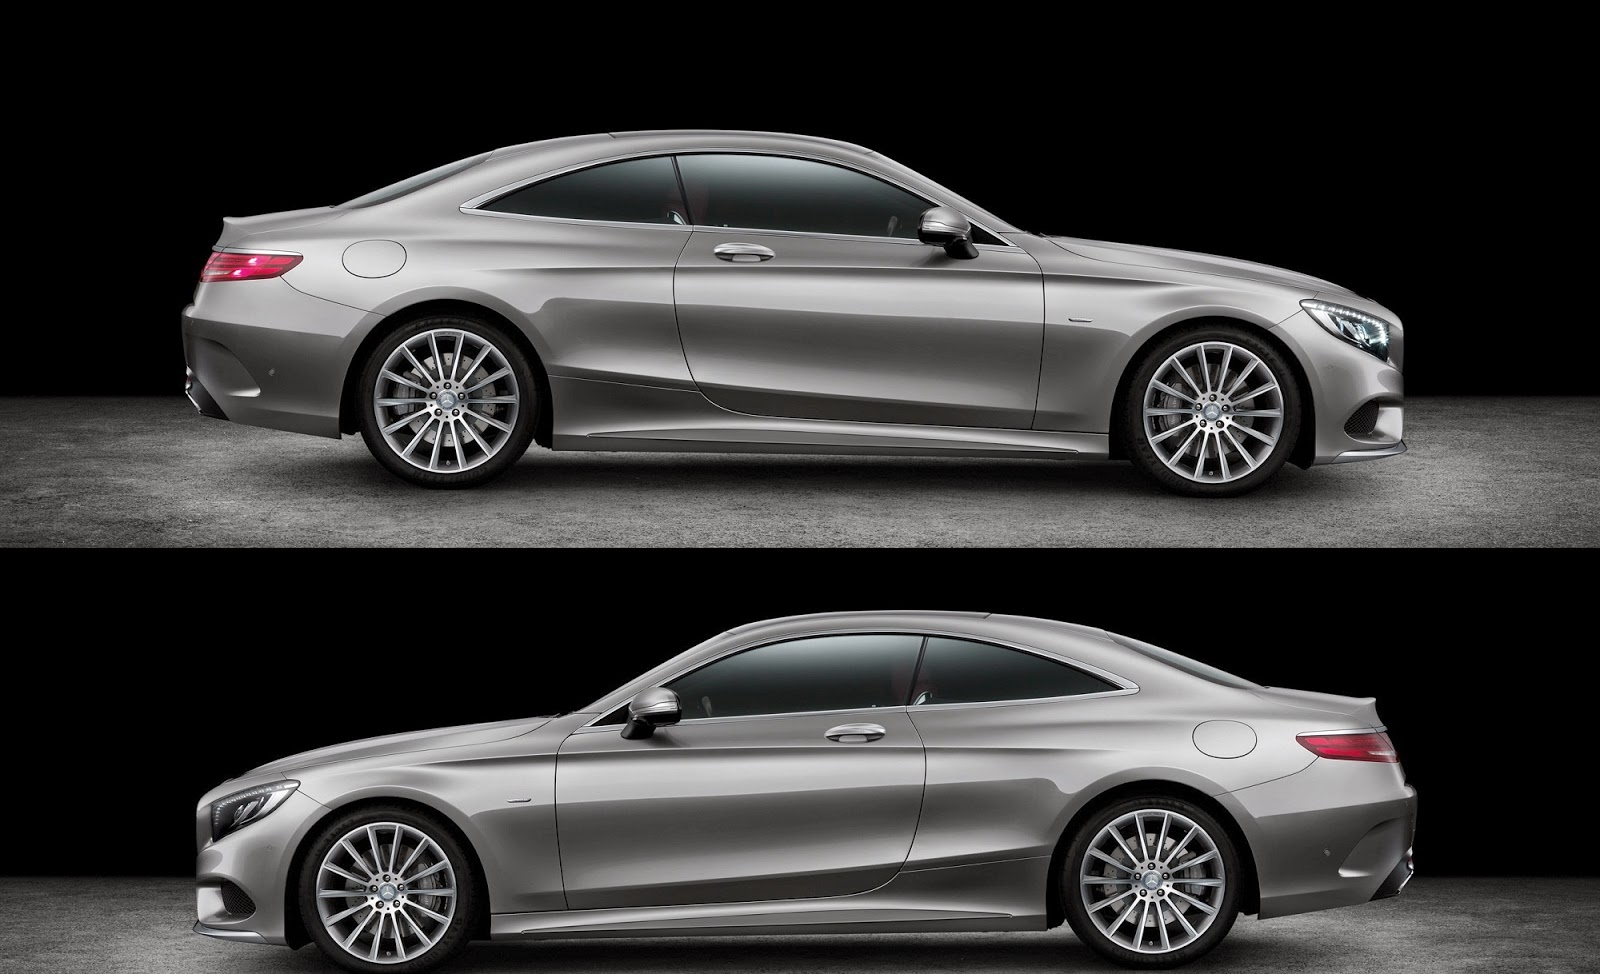 New 2015 mercedes benz s class coupe car reviews new for 2015 mercedes benz s class coupe